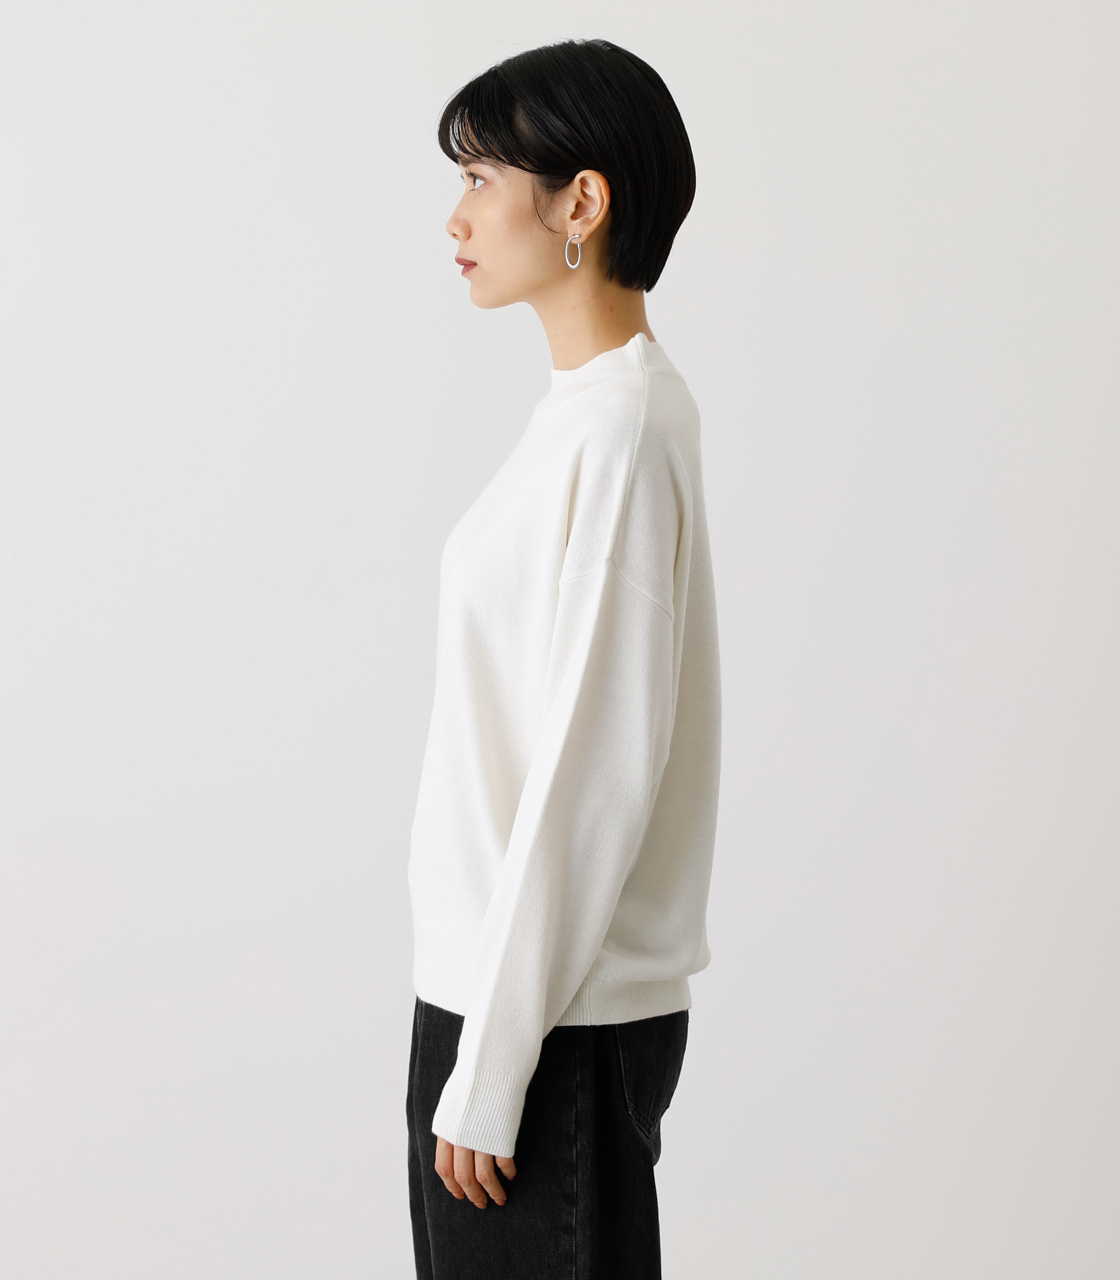 NUDIE H/N KNIT TOPS/ヌーディーハイネックニットトップス【MOOK53掲載 90022】 詳細画像 O/WHT 6